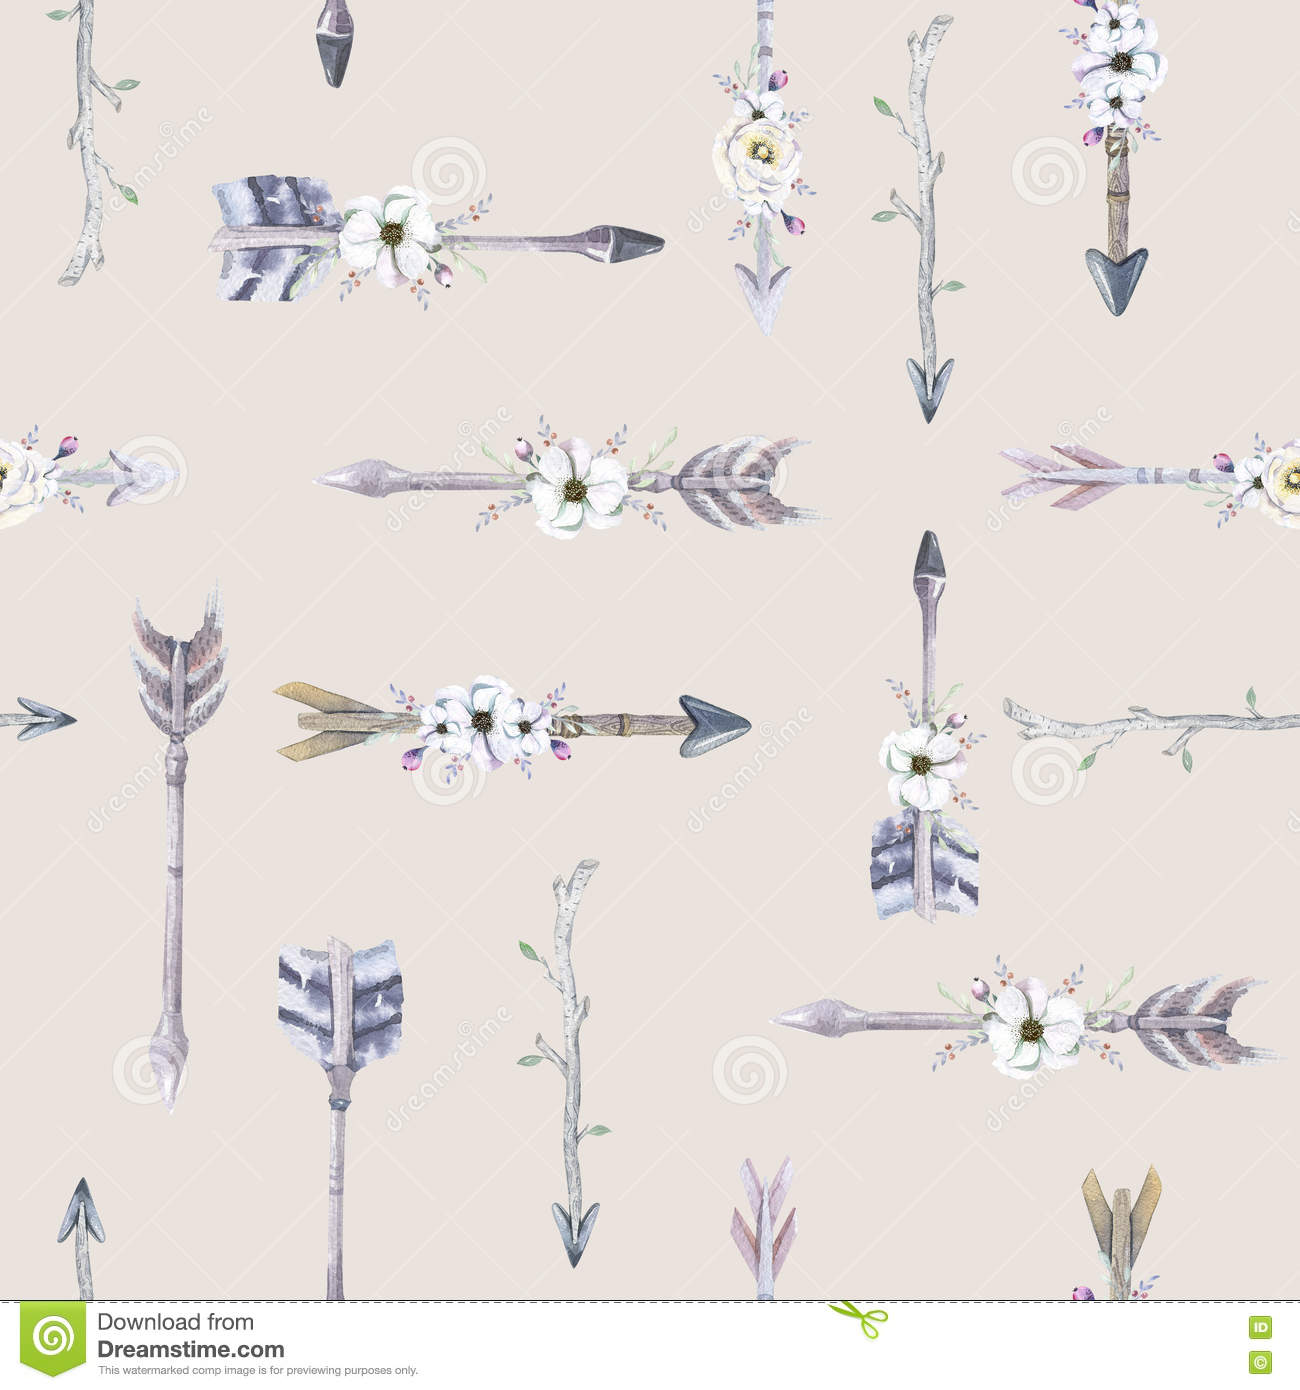 watercolor boho seamless pattern with teepee arrows and feather